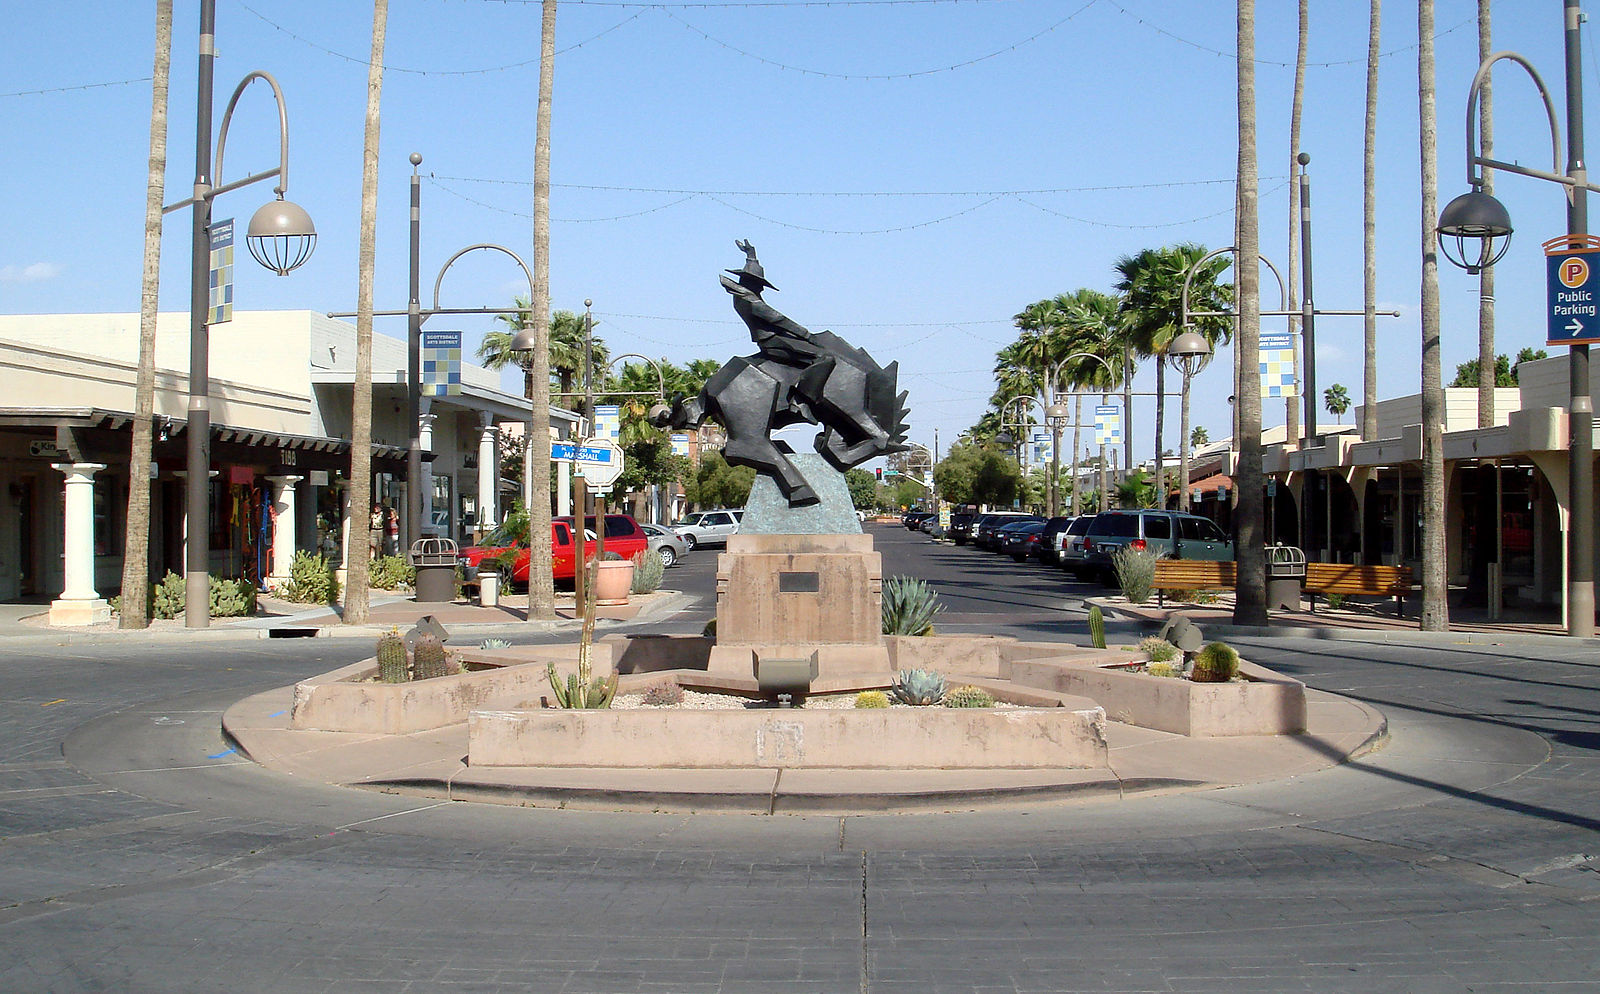 Jack Knife by Ed Mell in the Scottsdale Arts District